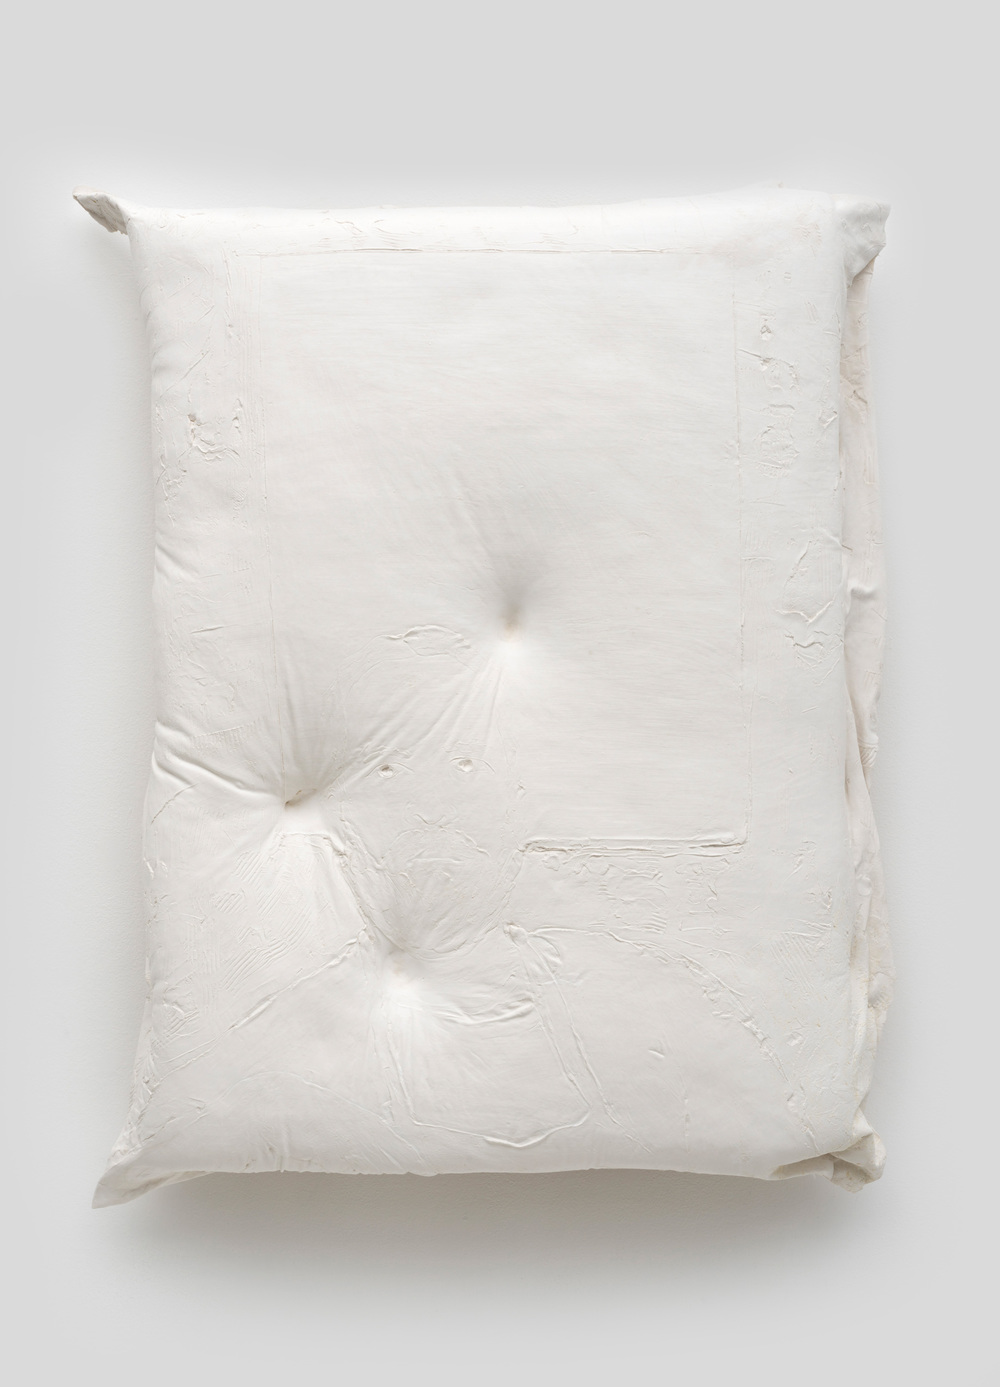 Anthony Miserendino  Untitled , 2014 Gypsum cement, fiberglass cloth, and wood 34 x 30 x 8 inches